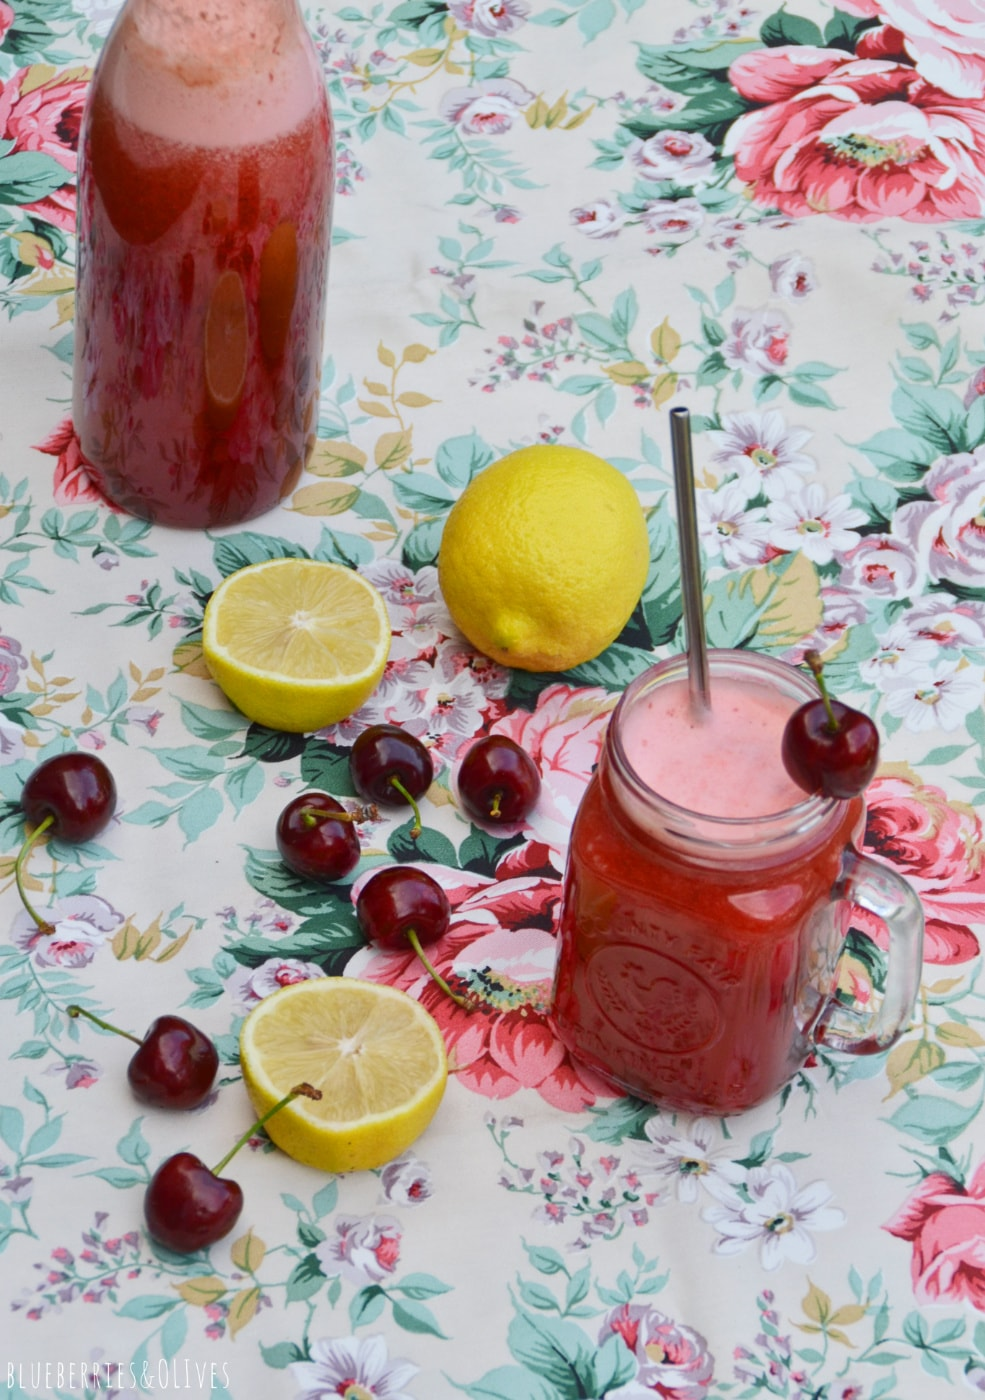 cherry lemonaDE IN Glass jar, cristal bottle full, flowered table cloth over green grass, pieces of lemon and cherries